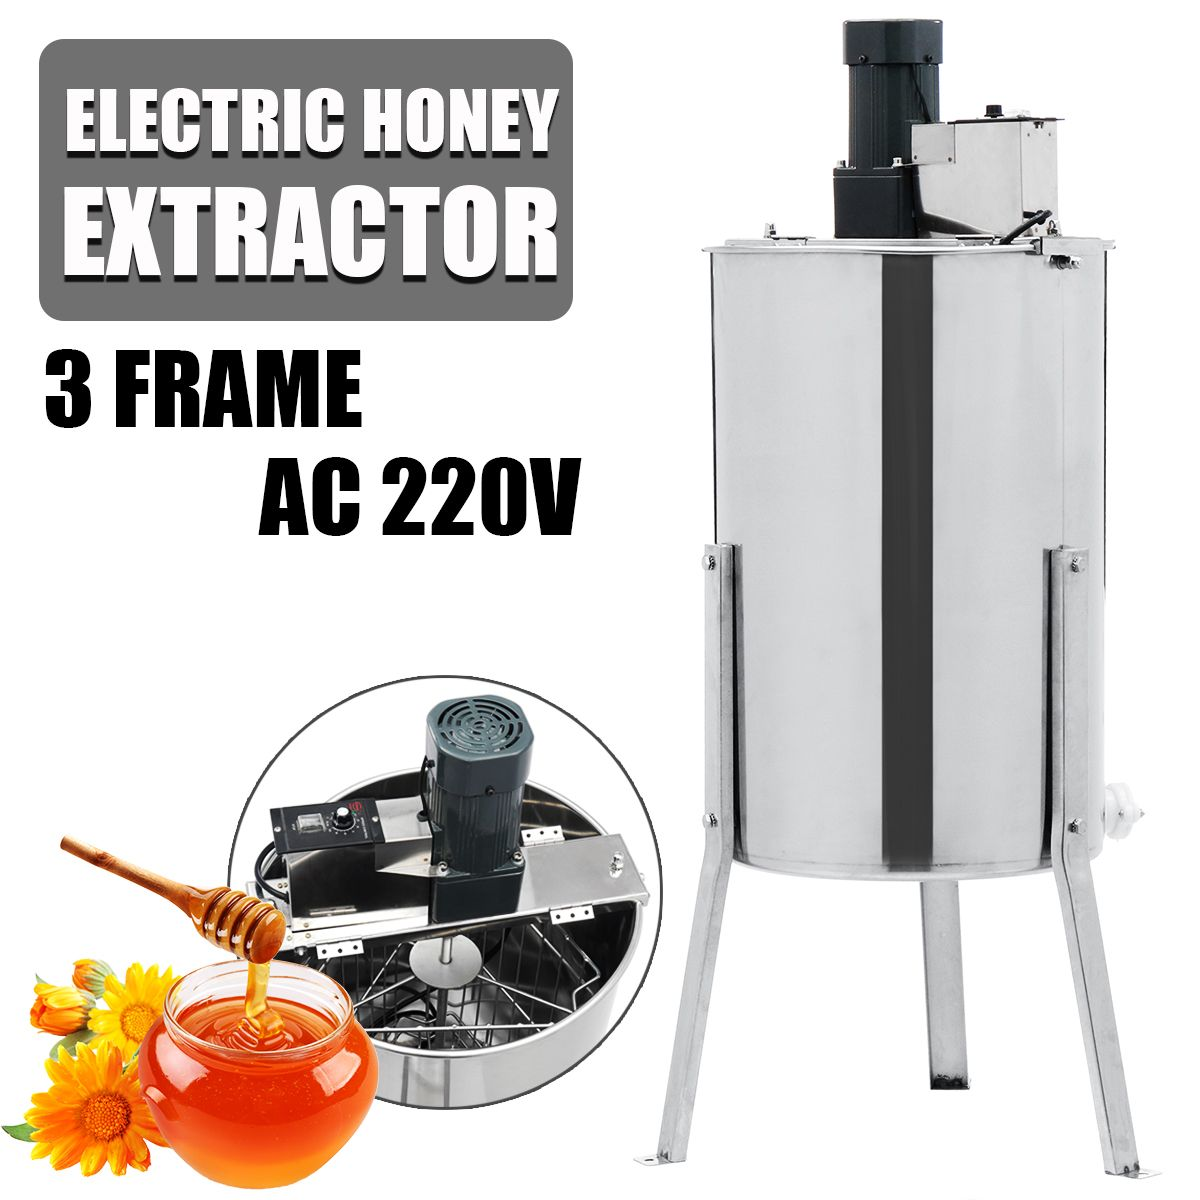 3 Frame Electric Honey Extractor Stainless Steel Beekeeping Machine Tool Box Honey Extractor Supplies Beekeeping Equipment